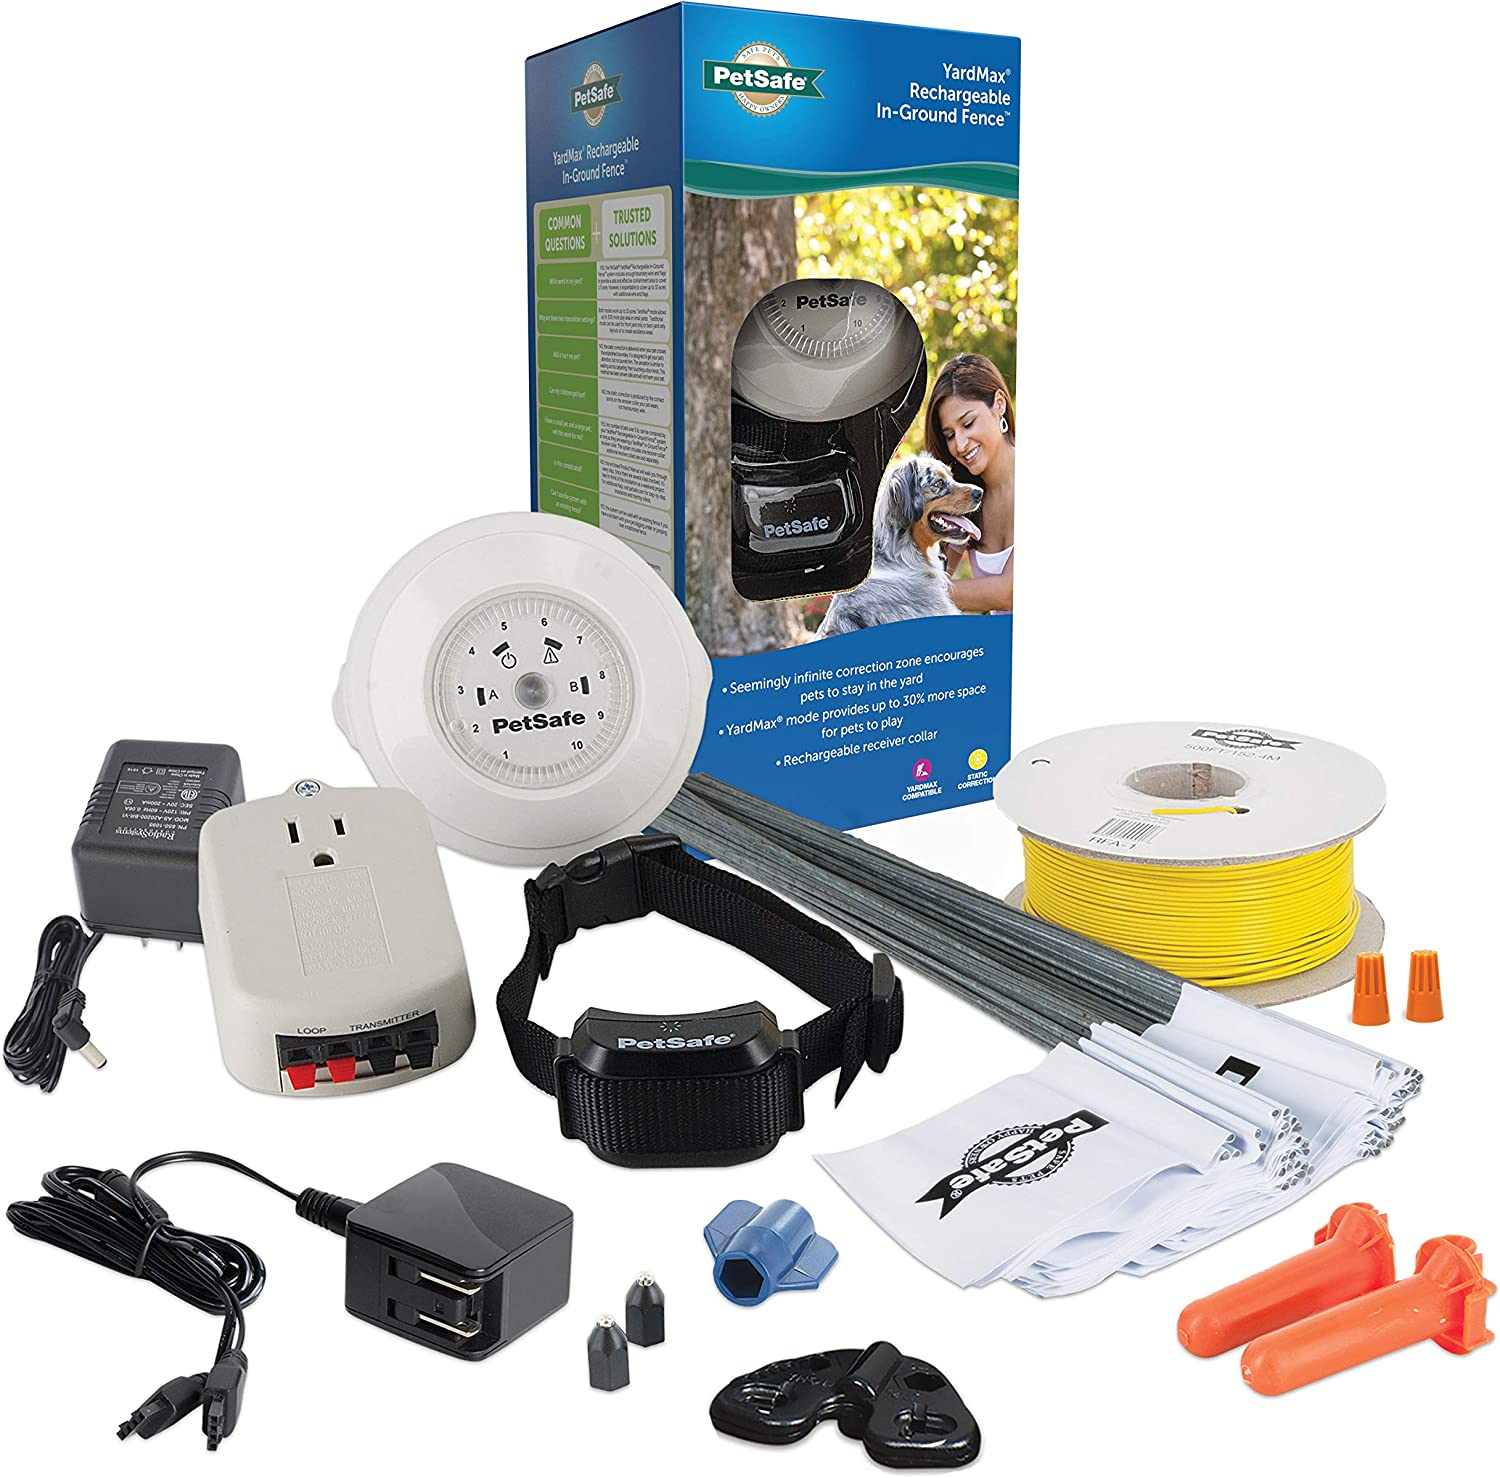 PetSafe YardMax Rechargeable In-Ground Fence